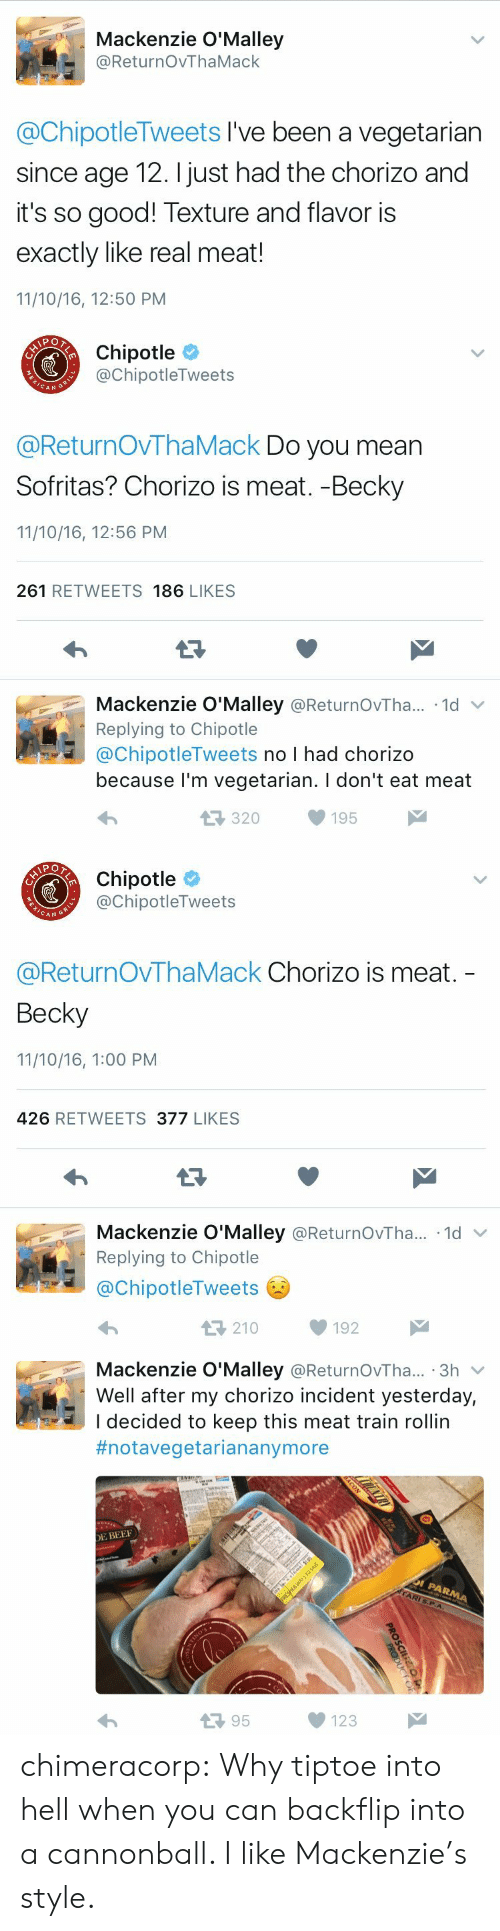 Broomstick, Chipotle, and Target: Mackenzie O'Malley  @ReturnOvThaMack  @ChipotleTweets I've been a vegetarian  since age 12. I just had the chorizo and  it's so good! Texture and flavor is  exactly like real meat!  11/10/16, 12:50 PM   Chipotle  @ChipotleTweets  CAN  @ReturnOVThaMack Do you mean  Sofritas? Chorizo is meat. -Becky  11/10/16, 12:56 PM  261 RETWEETS 186 LIKES  Mackenzie O'Malley @ReturnOvTha.. 1d  Replying to Chipotle  @ChipotleTweets no I had chorizo  because l'm vegetarian. I don't eat meat  320195   Chipotle  @ChipotleTweets  CAN G  @ReturnOvThaMack Chorizo is meat.  Becky  11/10/16, 1:00 PM  426 RETWEETS 377 LIKES  Mackenzie O'Malley @ReturnOvTha...-1d ﹀  Replying to Chipotle  @ChipotleTweets  わ  210192   Mackenzie O'Malley @ReturnOvTha... 3h v  Well after my chorizo incident yesterday,  I decided to keep this meat train rollin  #notavegetariananymore  E BEE  13 95  123 chimeracorp: Why tiptoe into hell when you can backflip into a cannonball. I like Mackenzie's style.